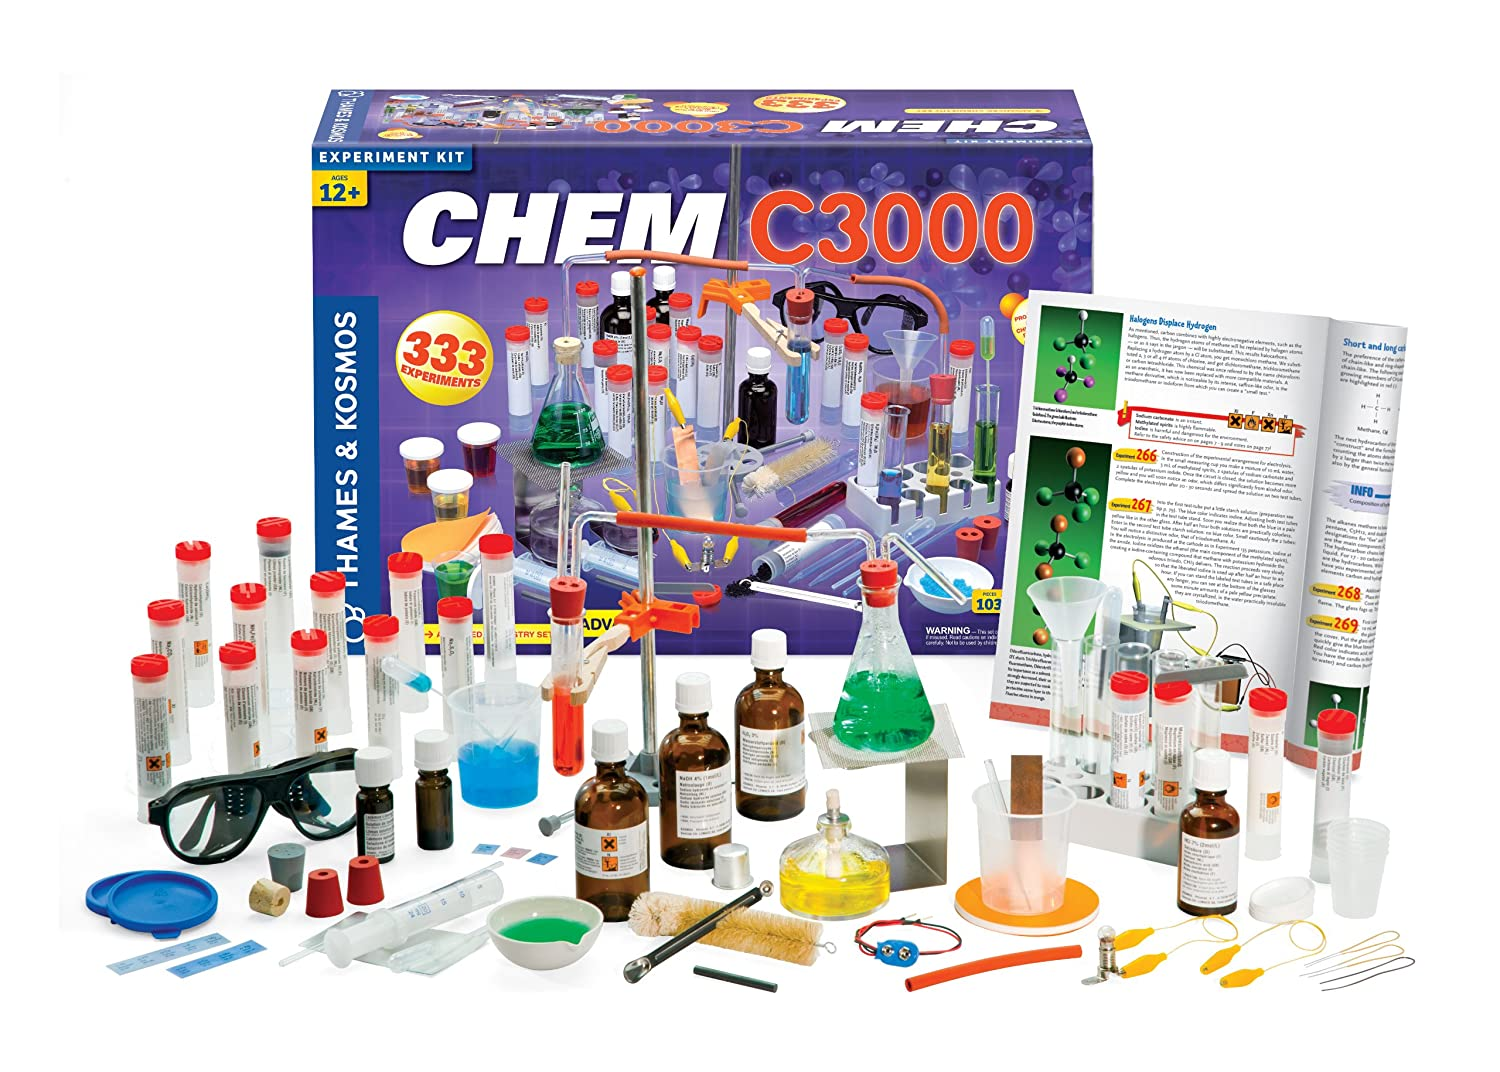 Illustrated Guide To Home Chemistry Experiments Pdf